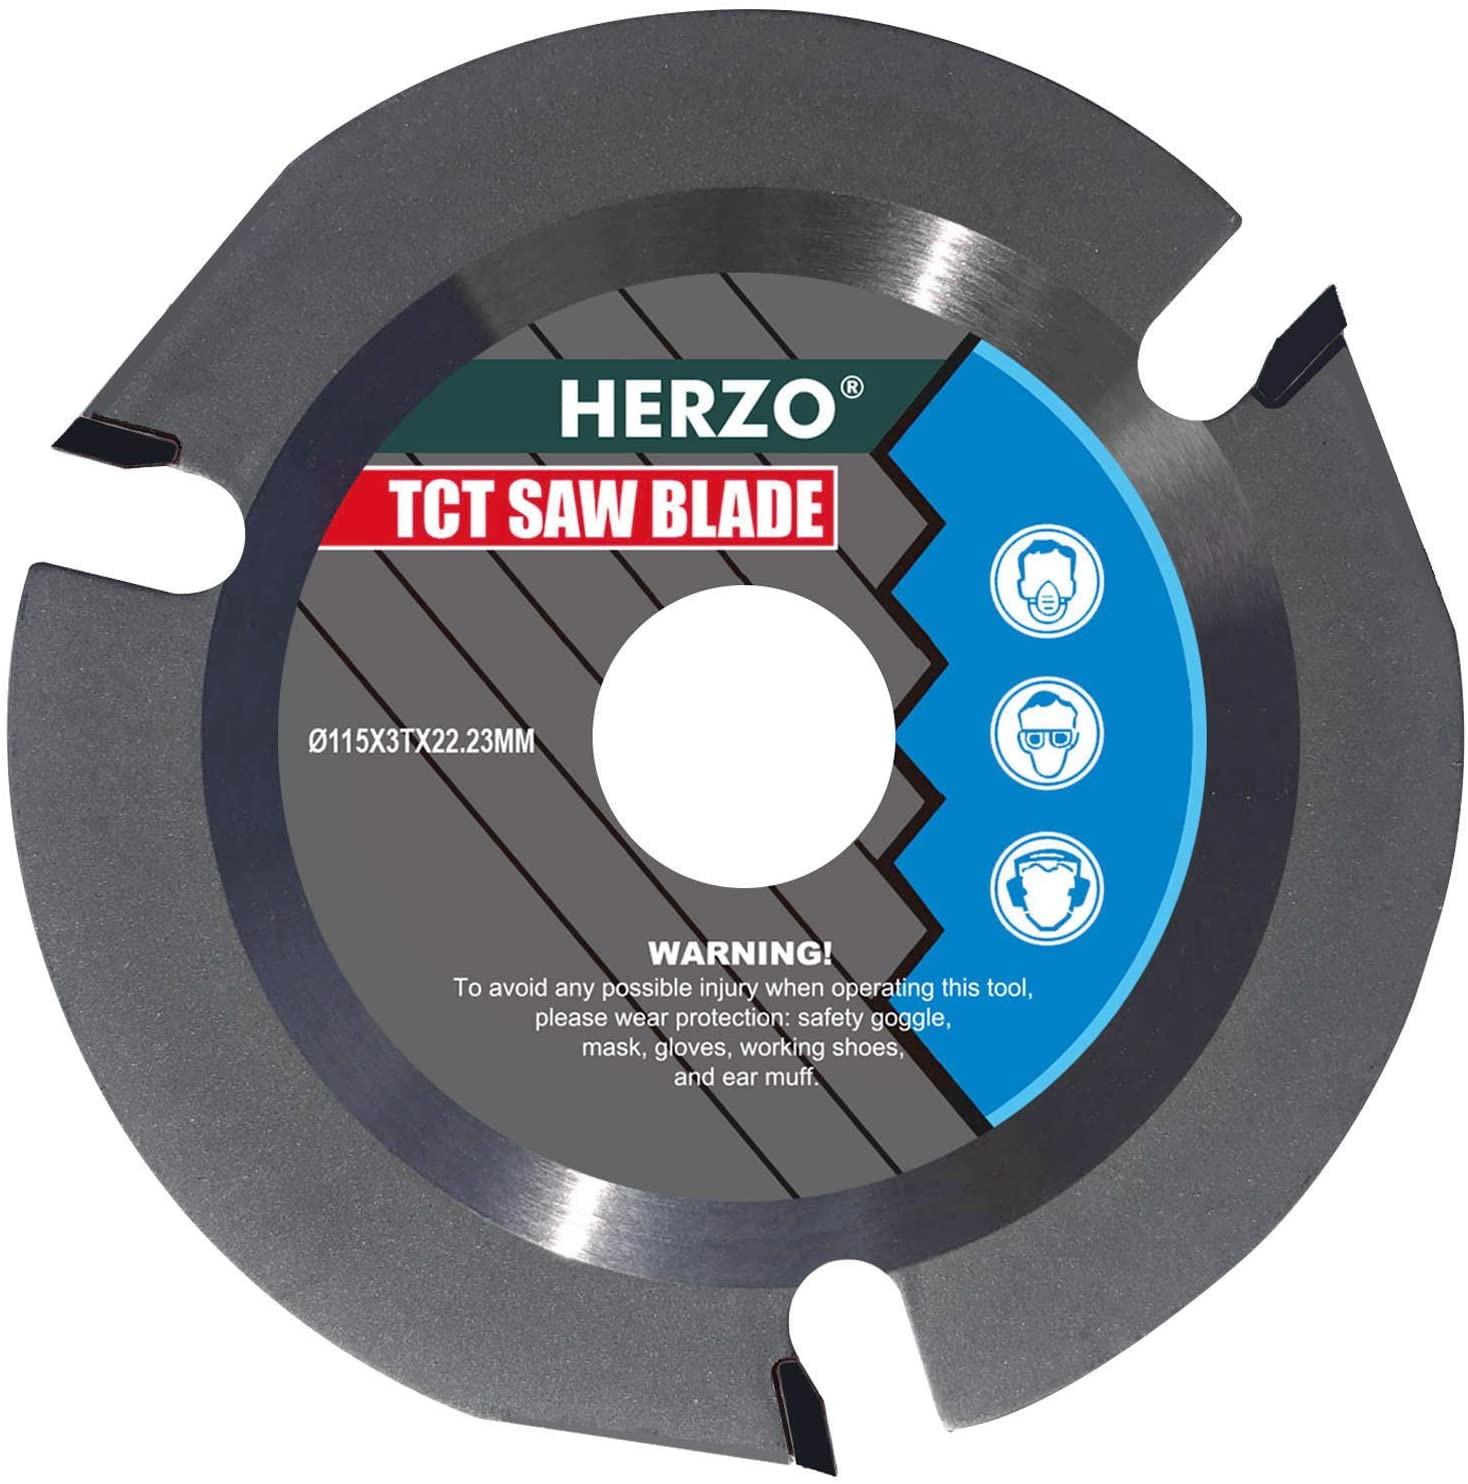 HERZO Grinder Wood Cutting Blade Disc,Carbide Carving Discs for Angle Grinder 4.5-inch